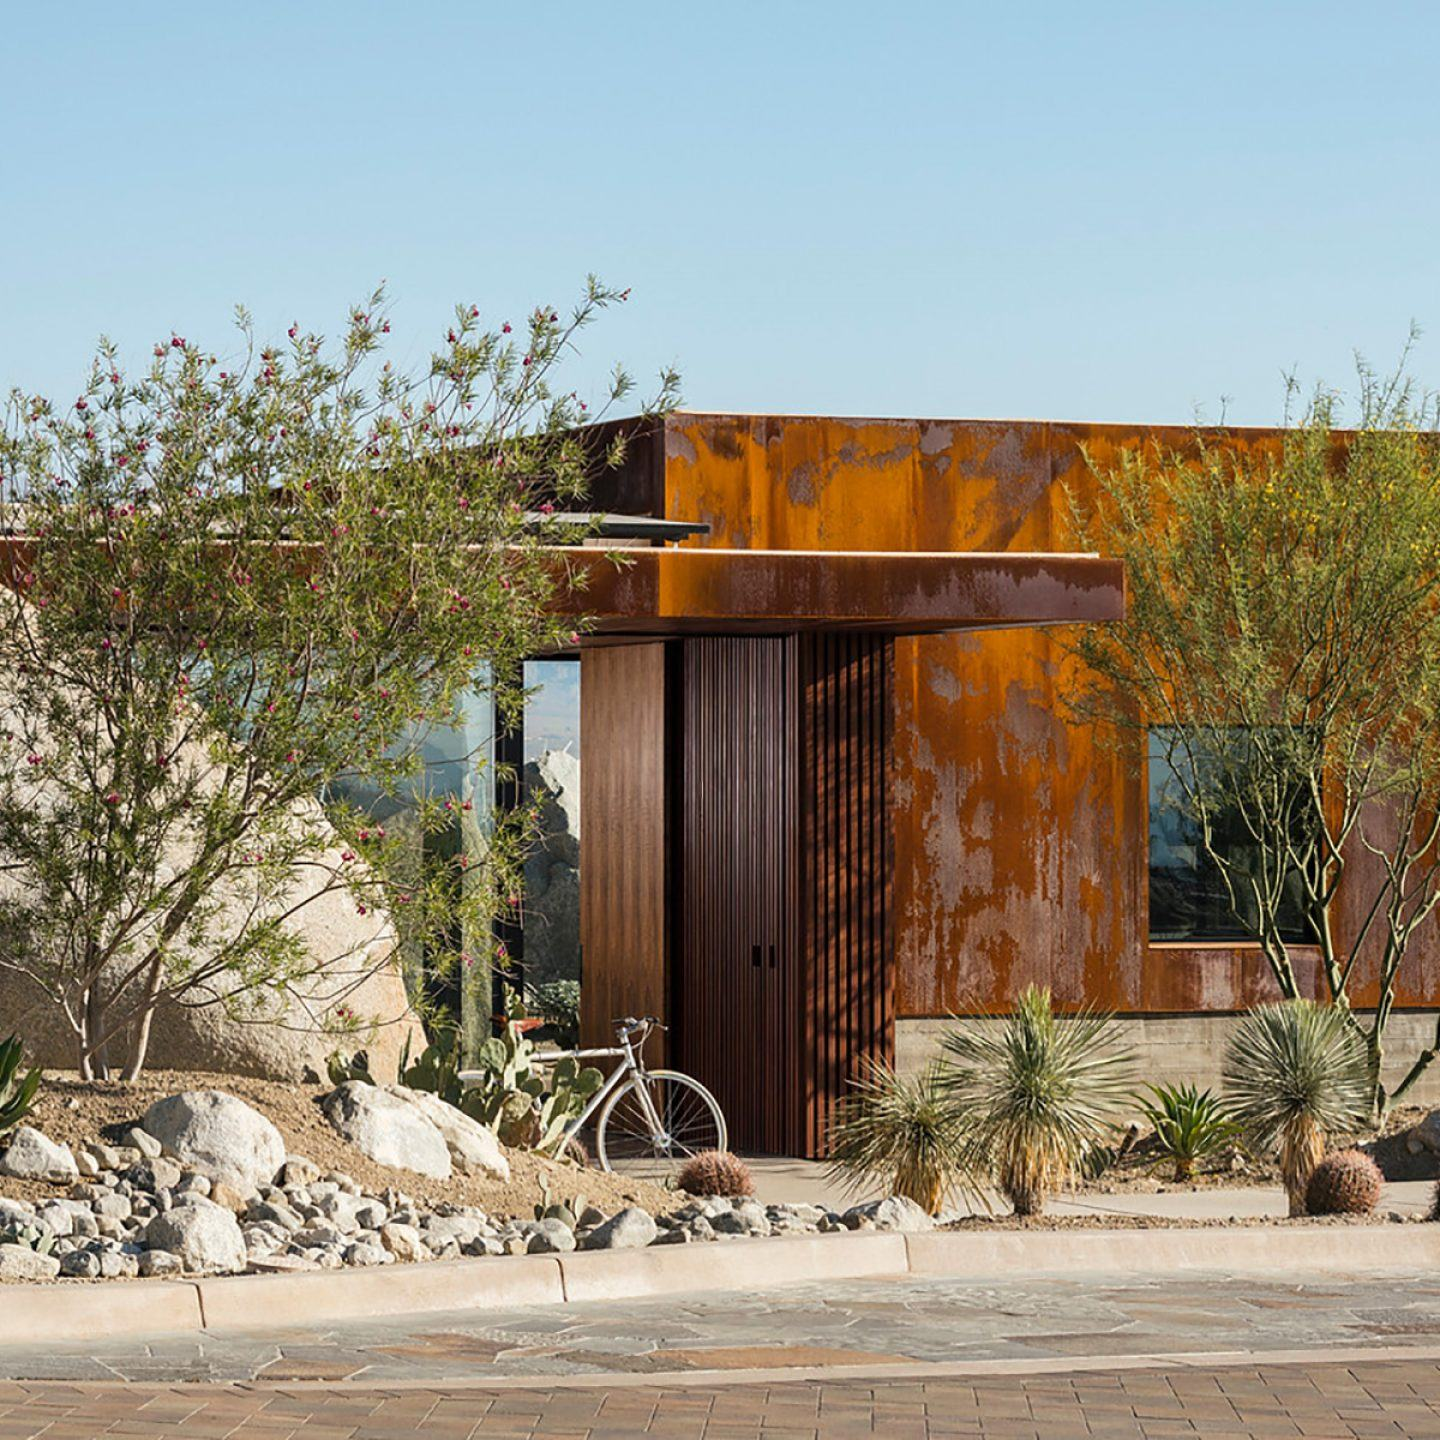 IGNANT-Architecture-Sean-Lockyer-Desert-Palisades-16